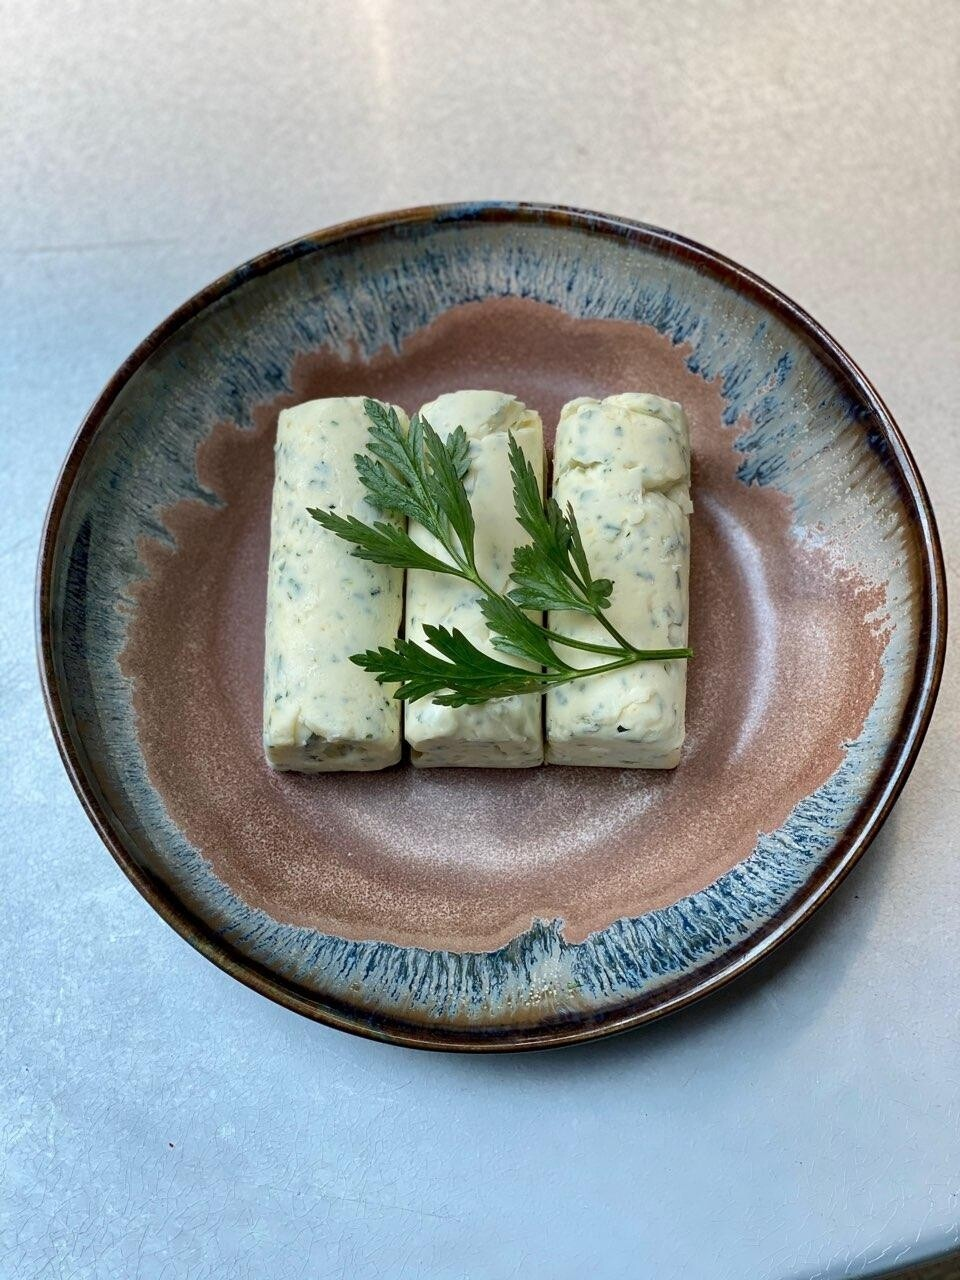 Heirloom Tomato Compound Butter - Cadre Madison